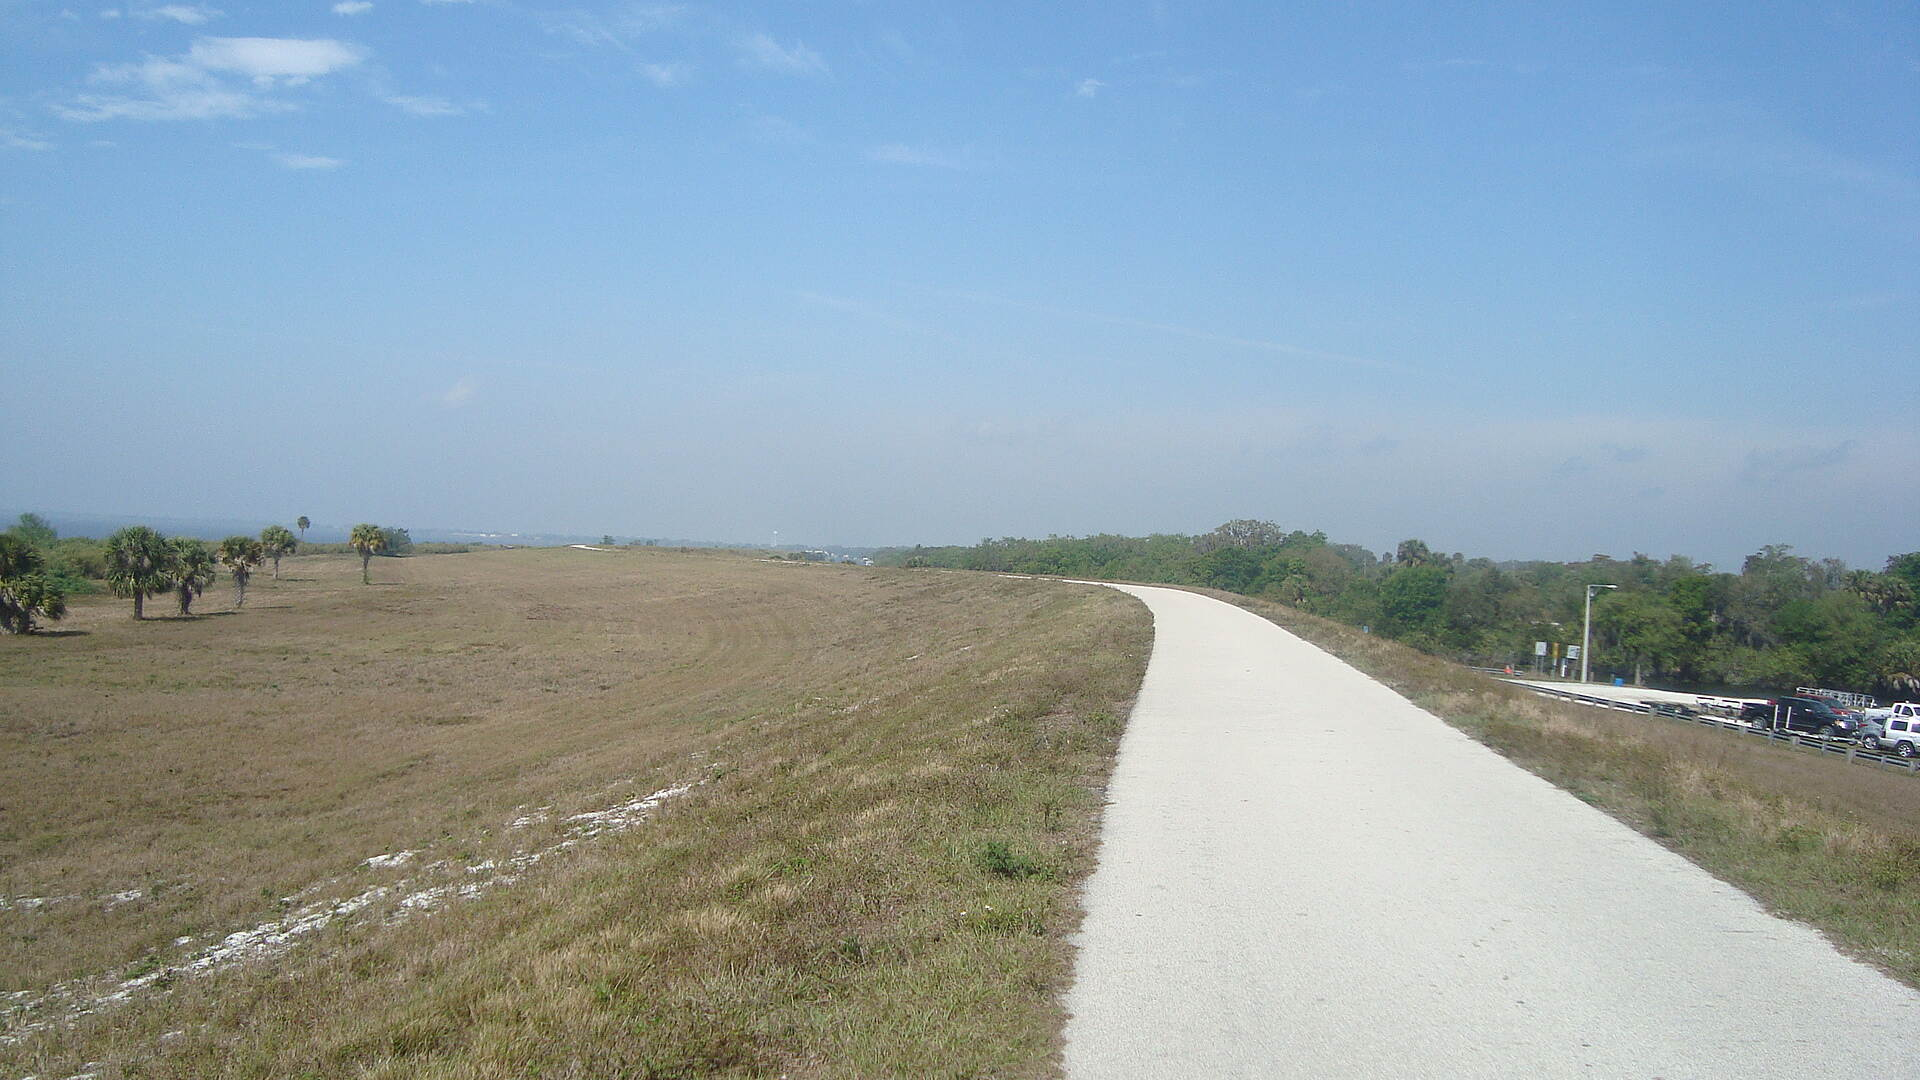 Lake Okeechobee Scenic Trail (LOST) Top of the rim